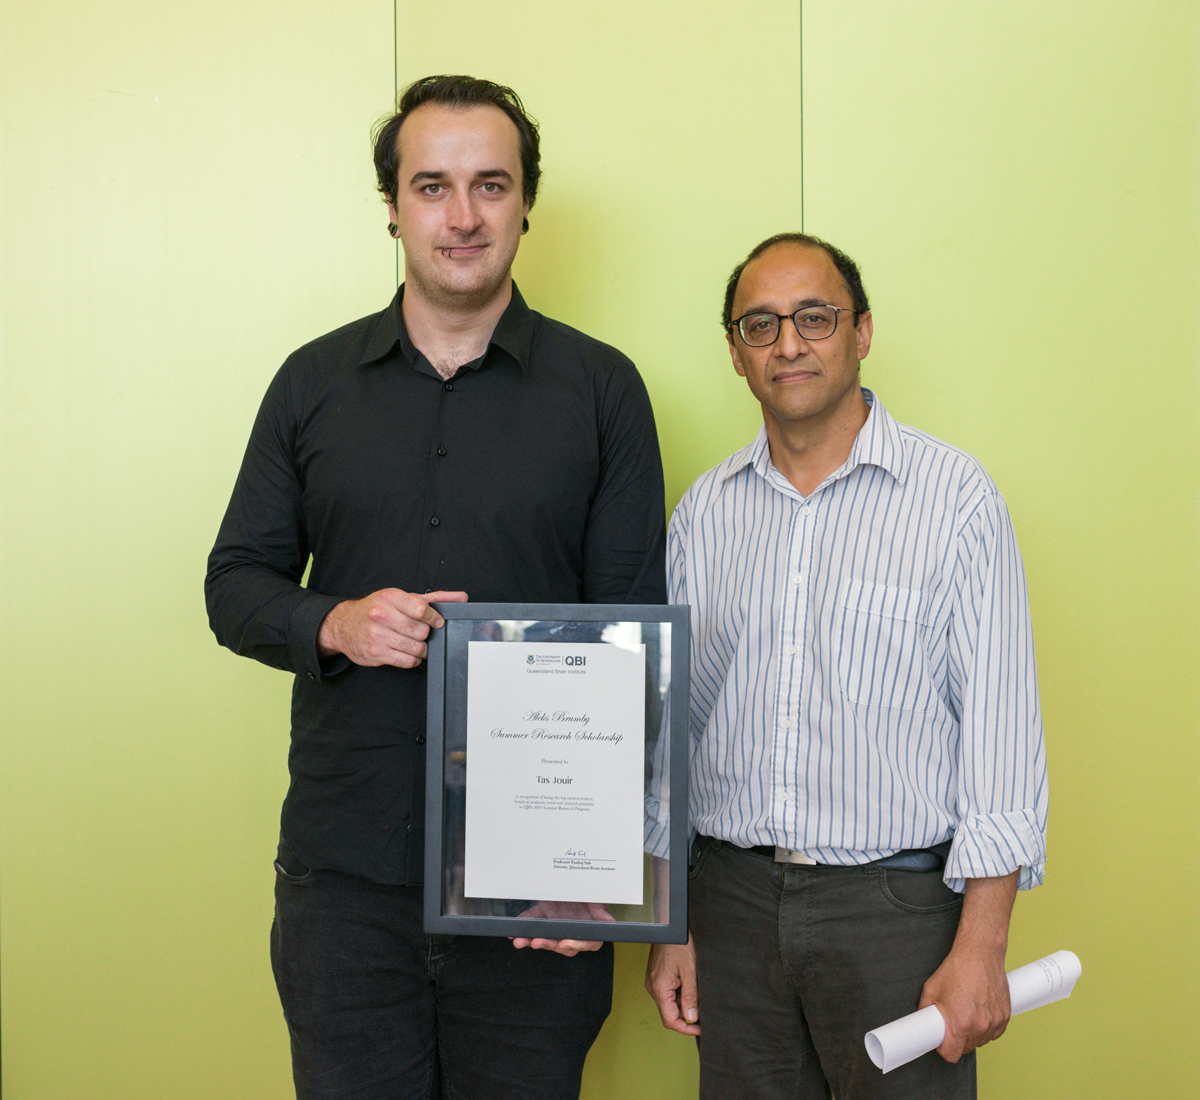 Tas Jouir is awarded the Aleks Brumby Summer Research Scholarship